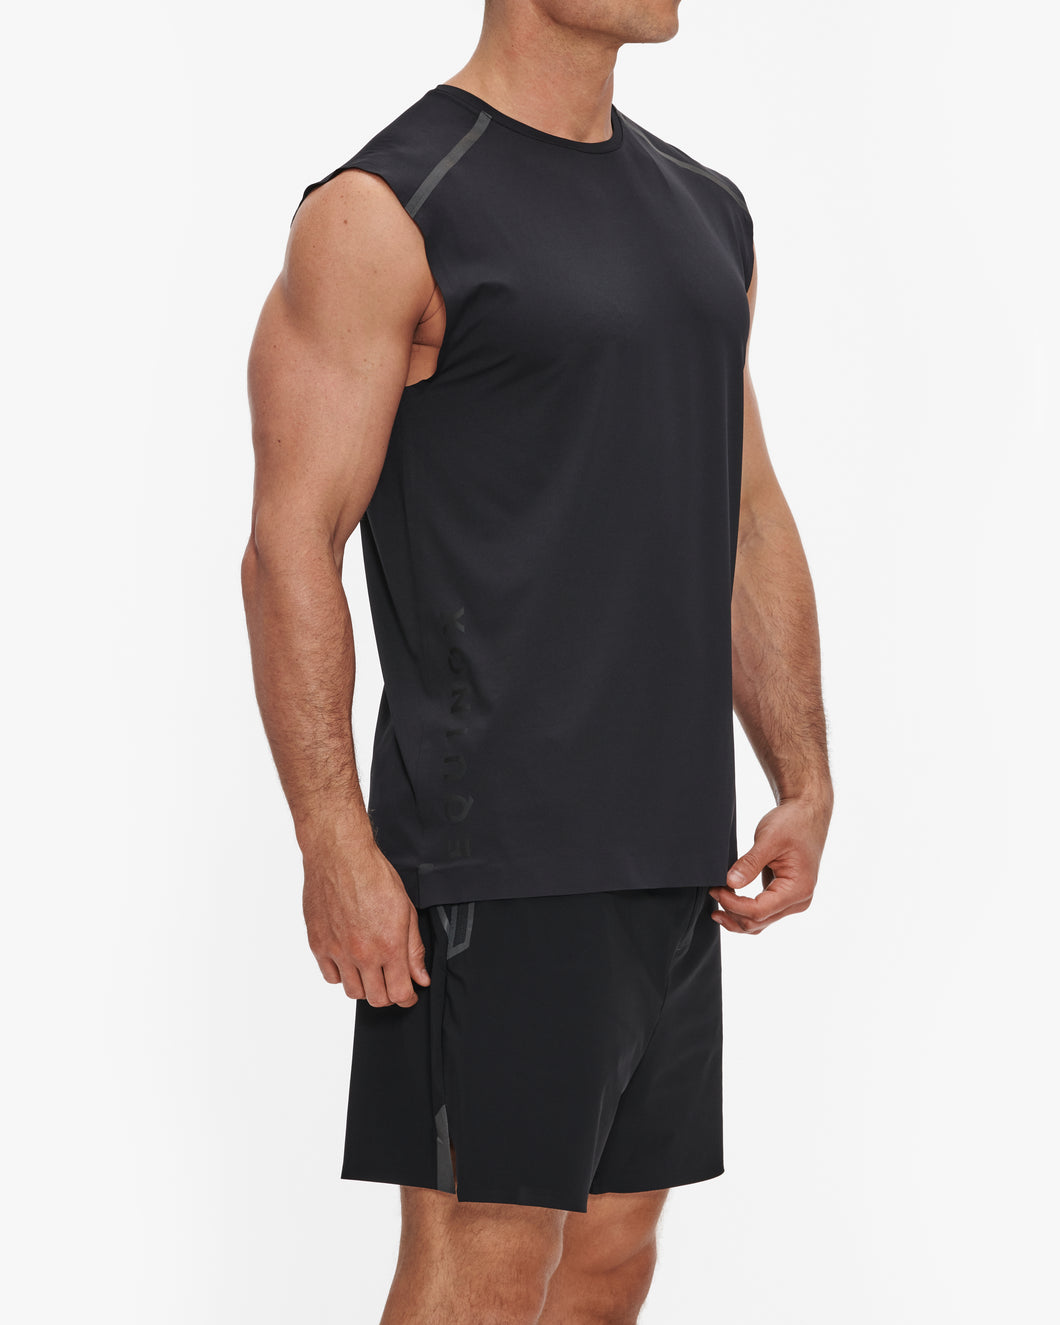 EQUINOX PERFORMANCE TANK